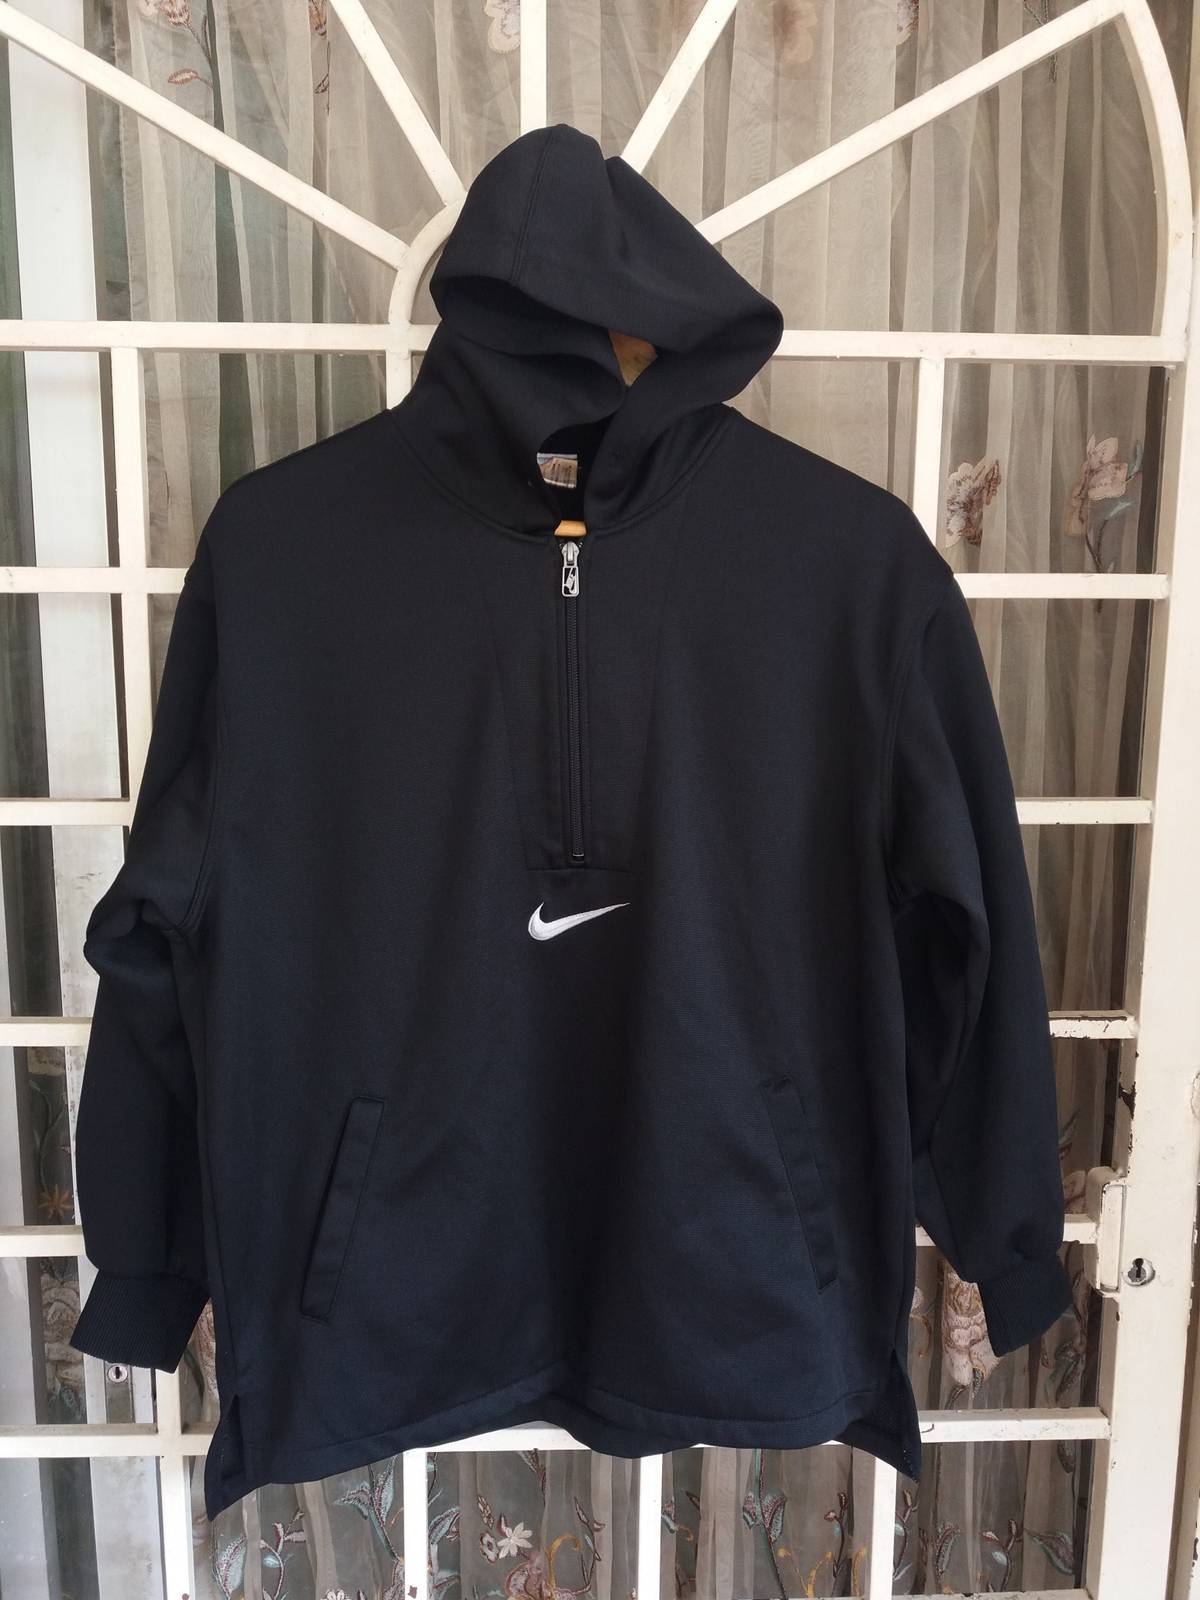 5541e8e8b2fb7 Nike Vintage 90s Nike training jacket big logo half zipper black ...